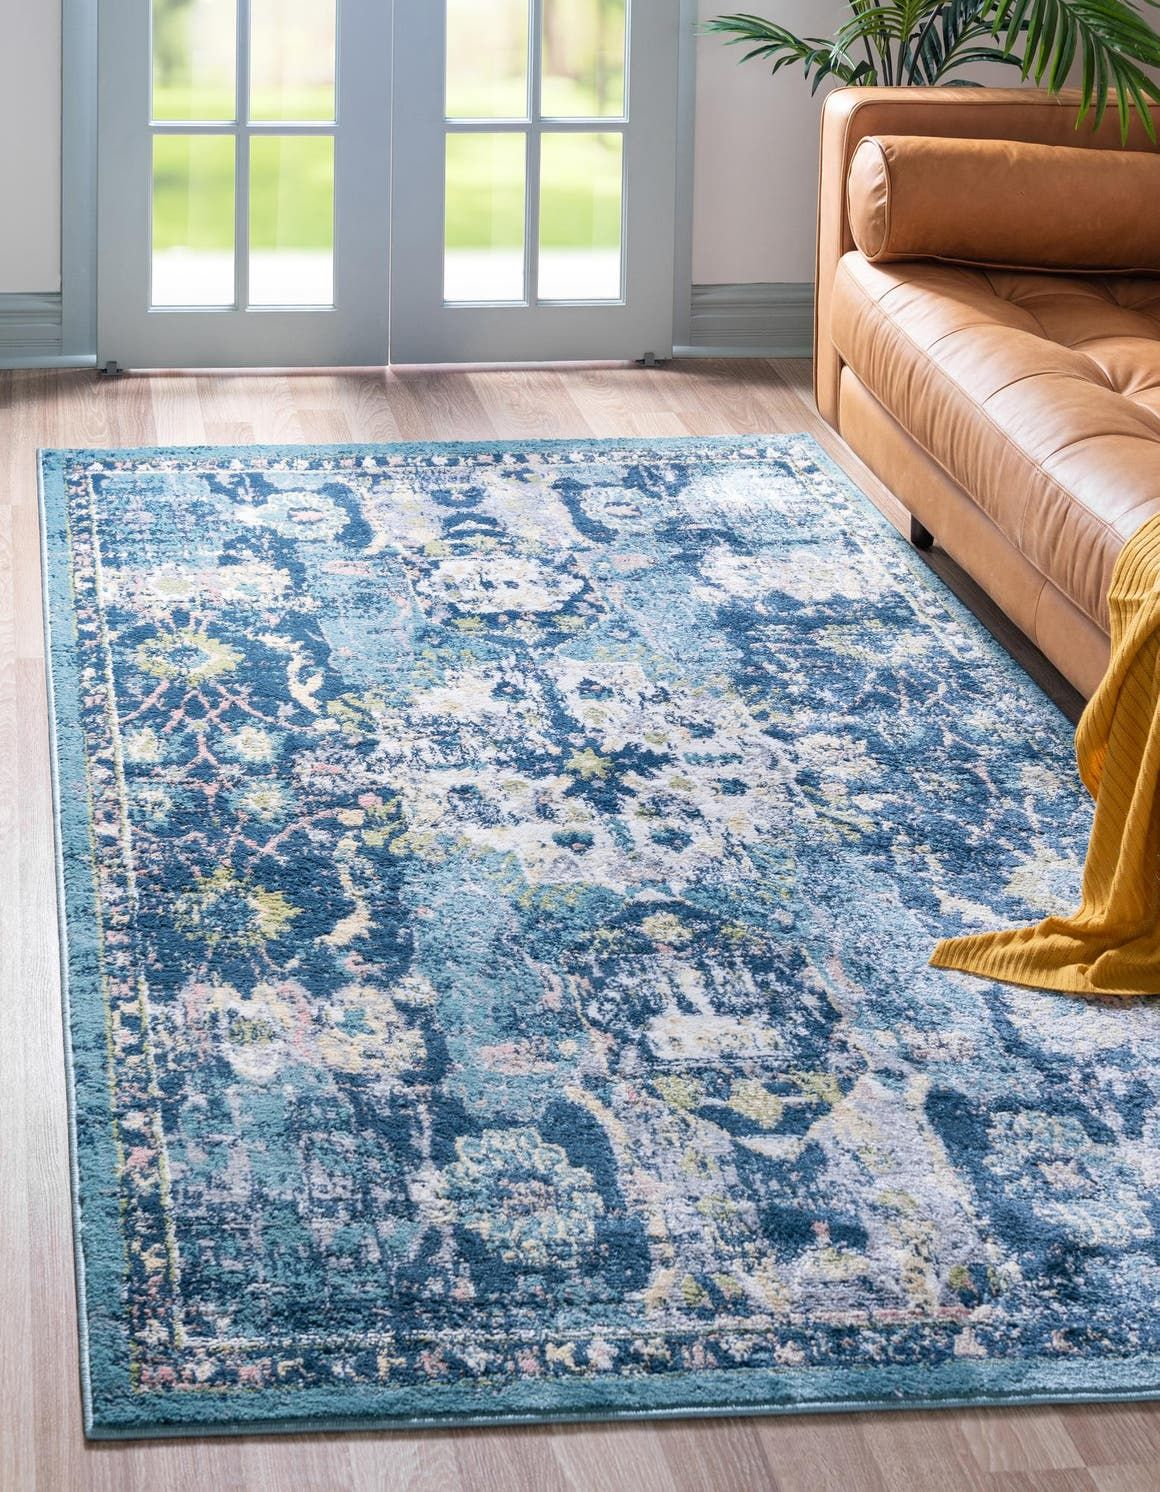 Charleston Navy Blue Vintage 9x12 Large Area Rug In 2020 Rugs 8x10 Area Rugs Area Rugs